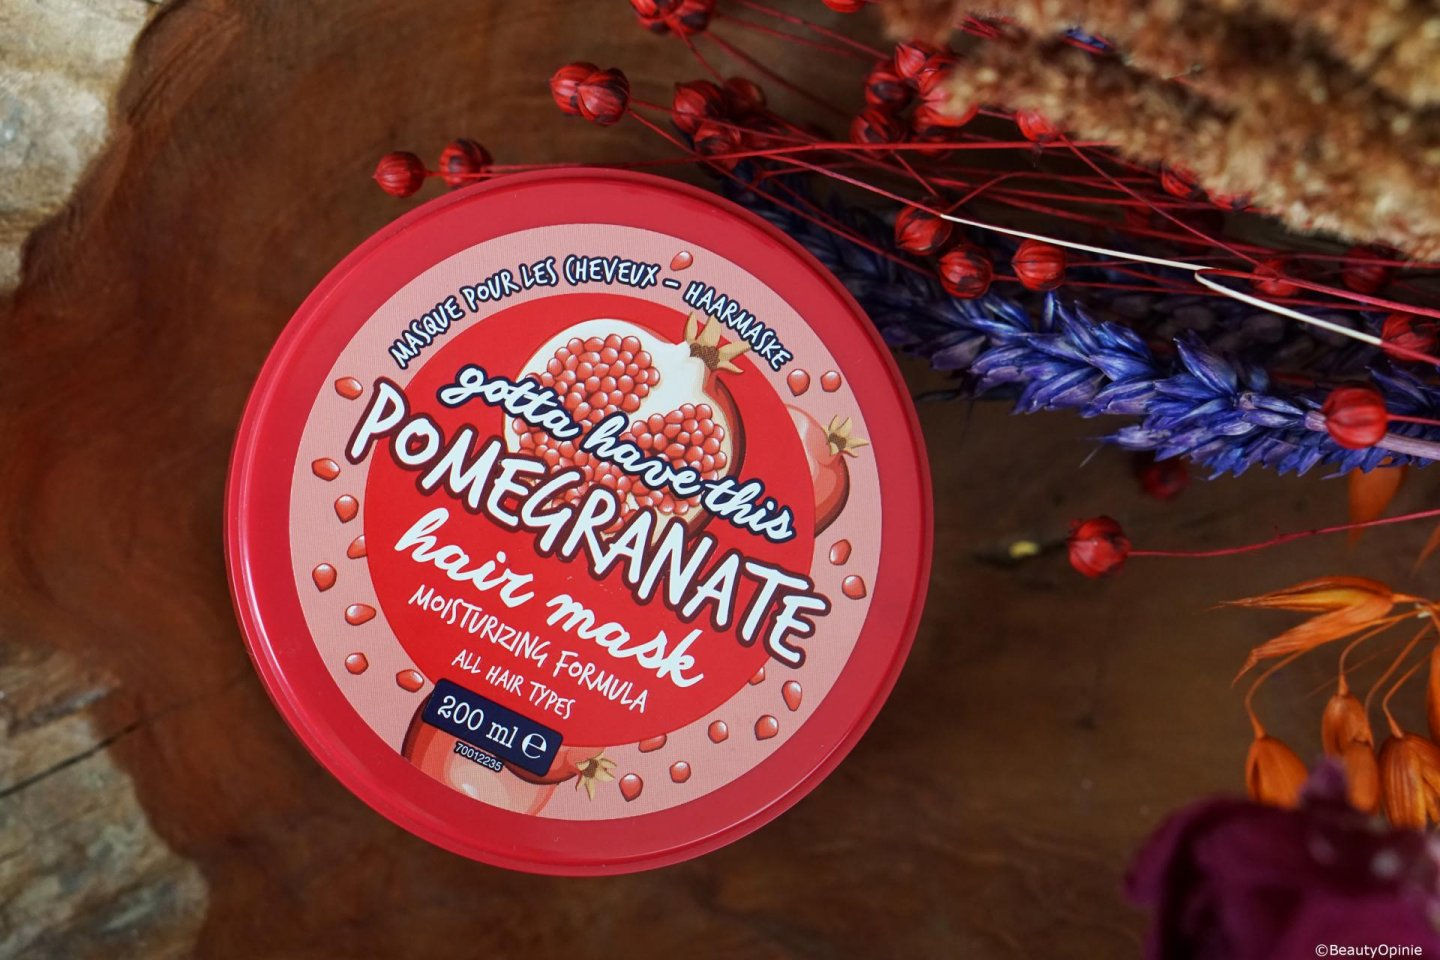 Pomegranate haarmasker van Action